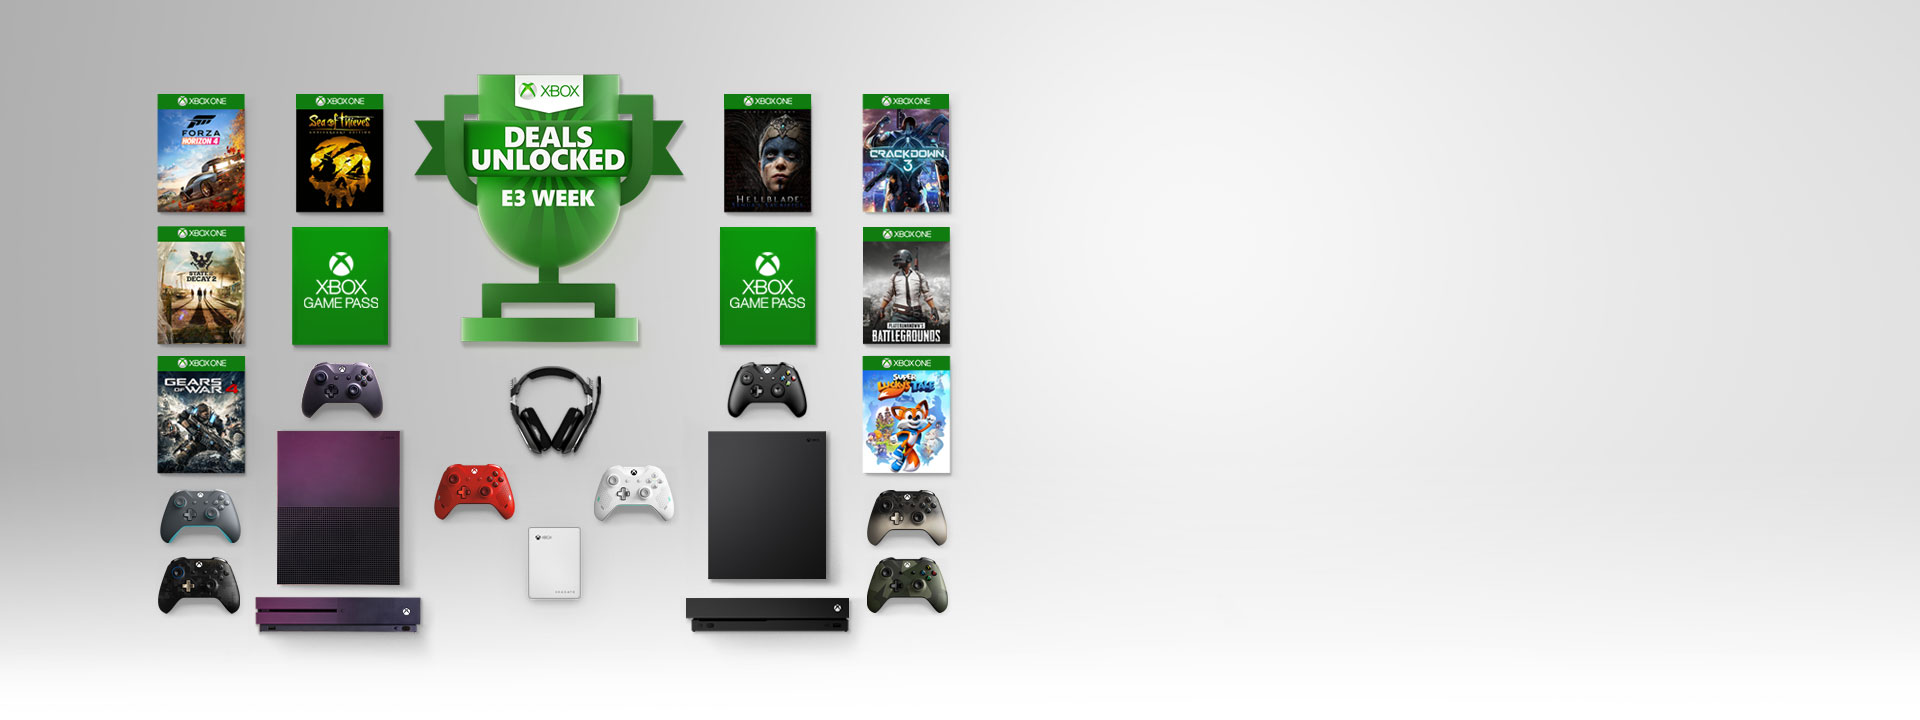 A collage featuring a trophy logo and Xbox One X, Gradient purple Xbox One S Special Edition, Xbox Game Pass, games, and accessories.